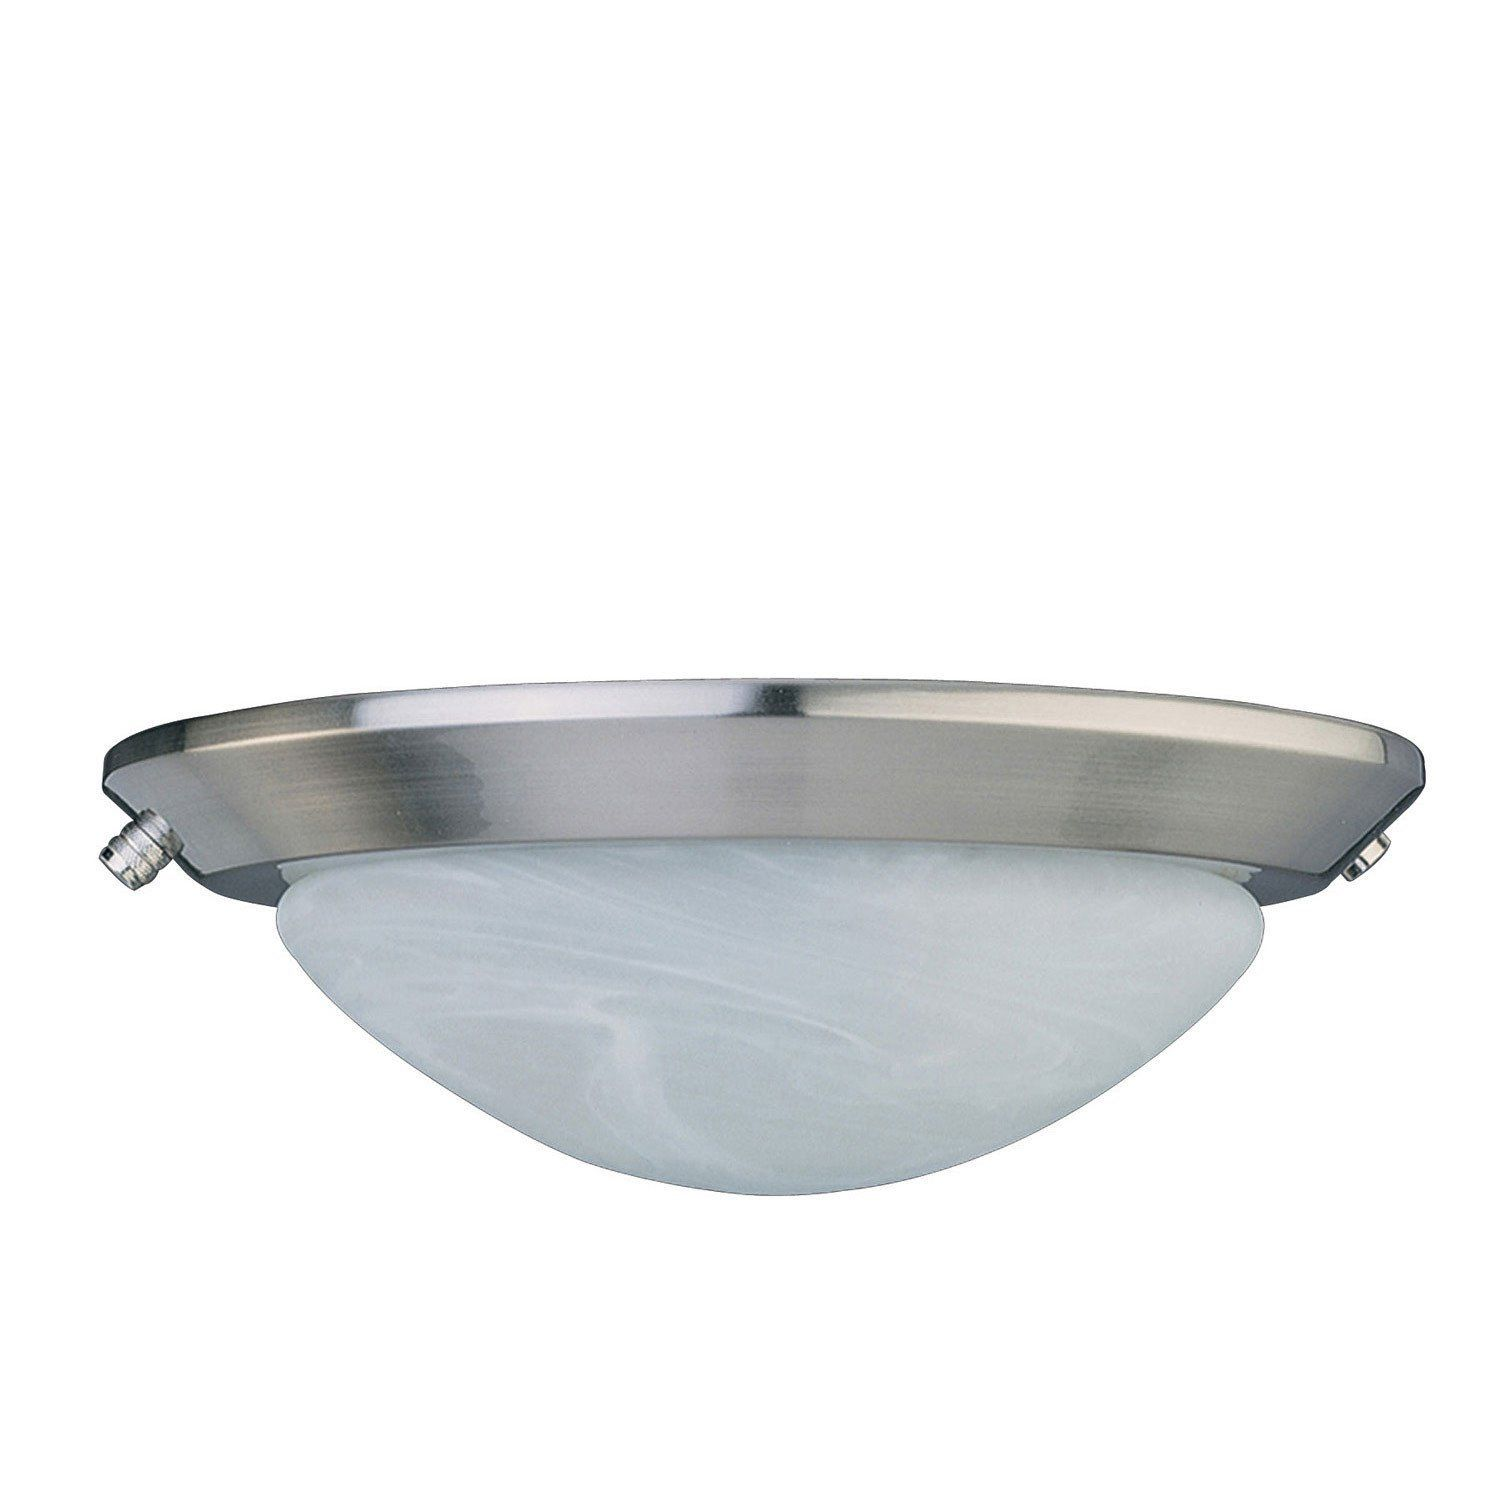 Concord Fans 2 Light Stainless Steel Finish Low Profile Ceiling